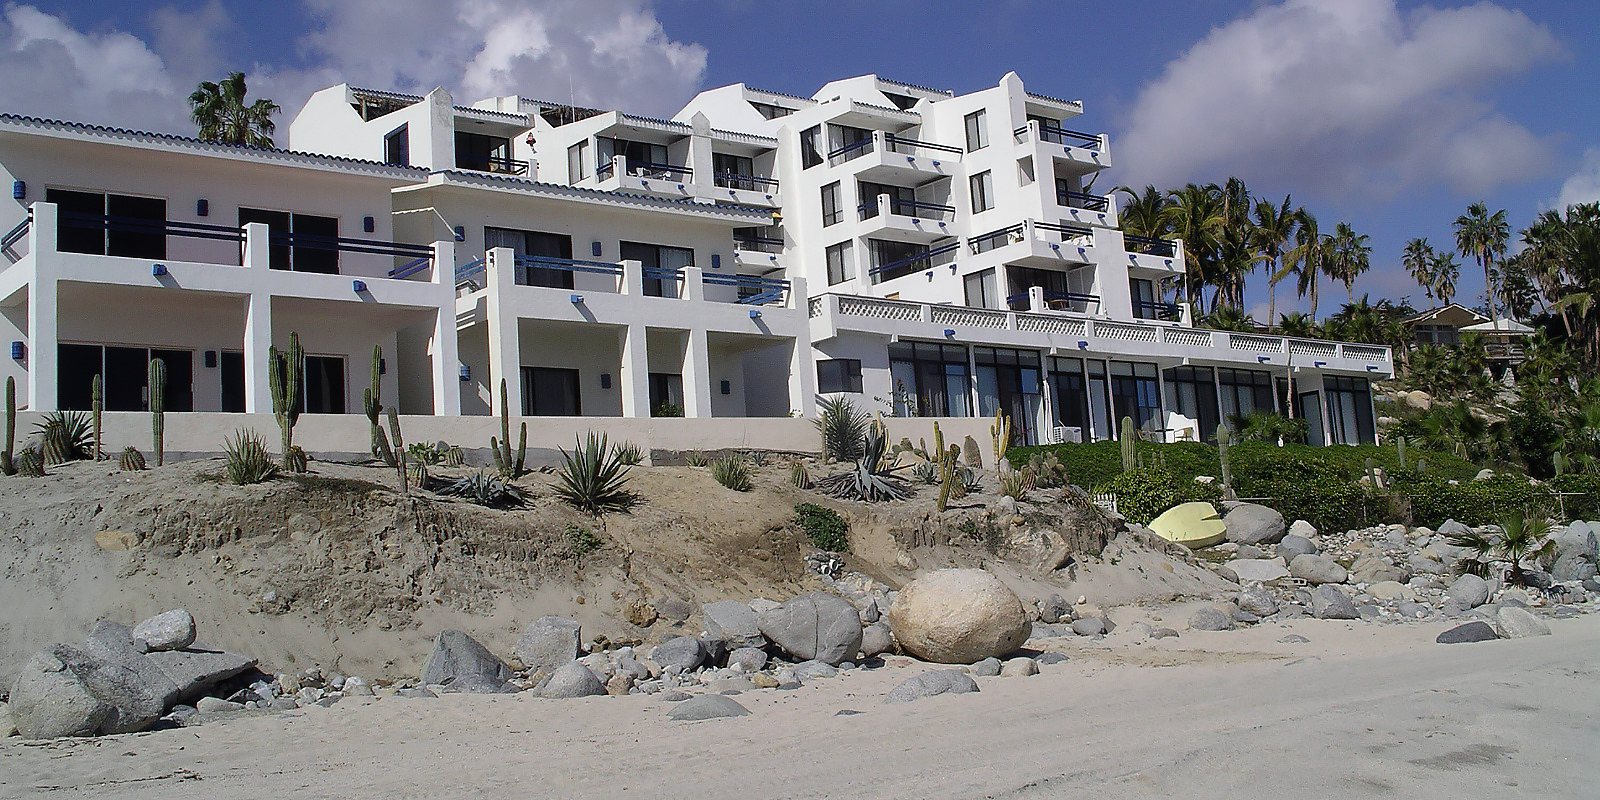 East Cape Hotel on the Beach